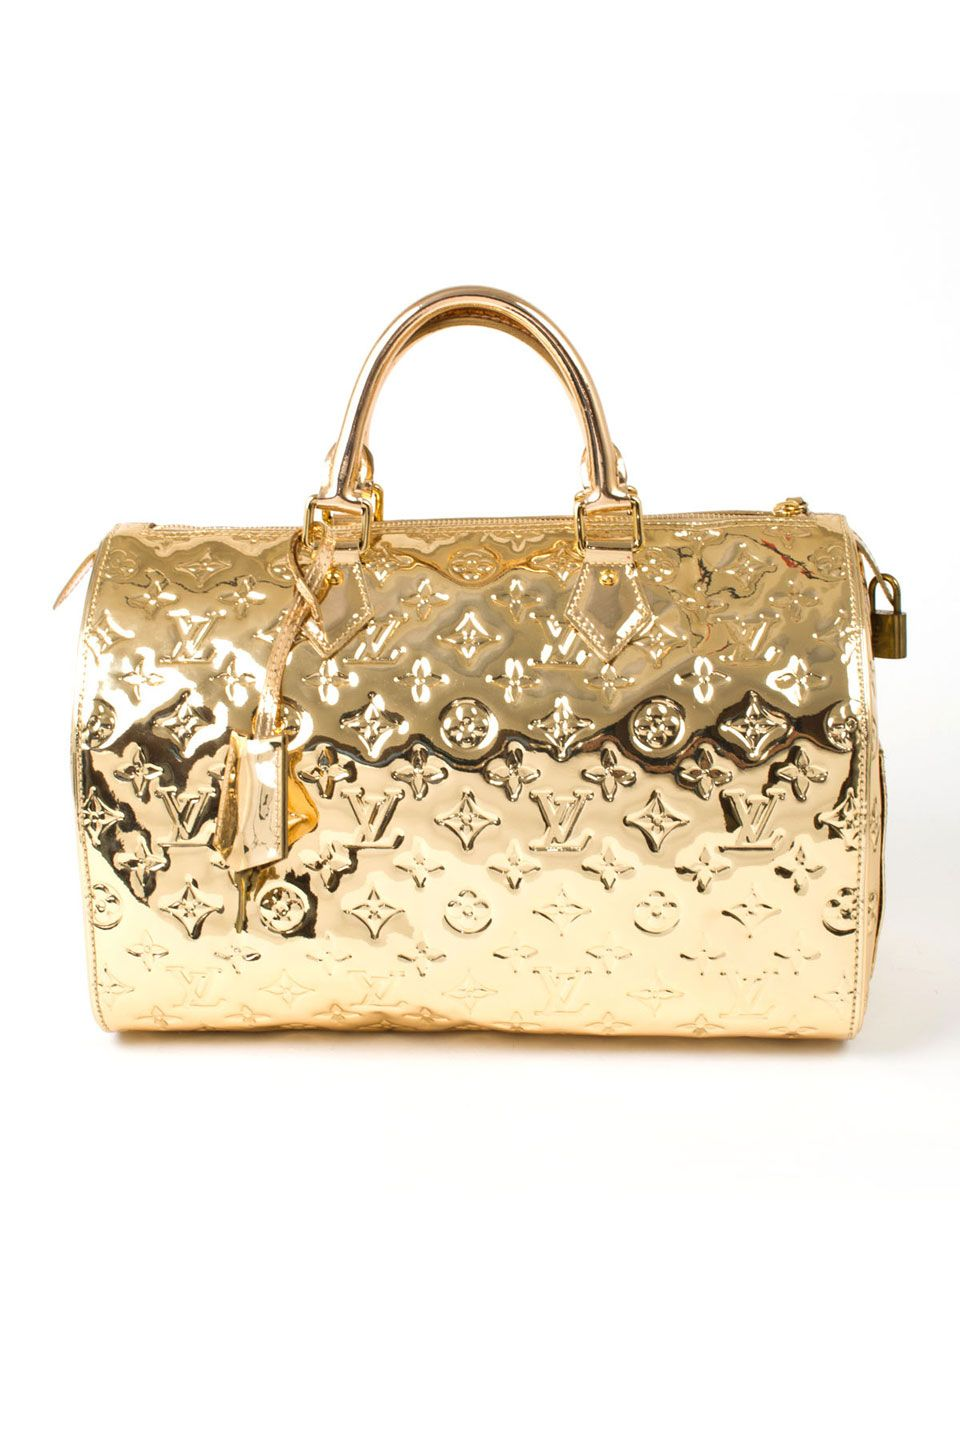 Lv limited edition miroir speedy 30 in gold tone louis for Louis vuitton miroir replica